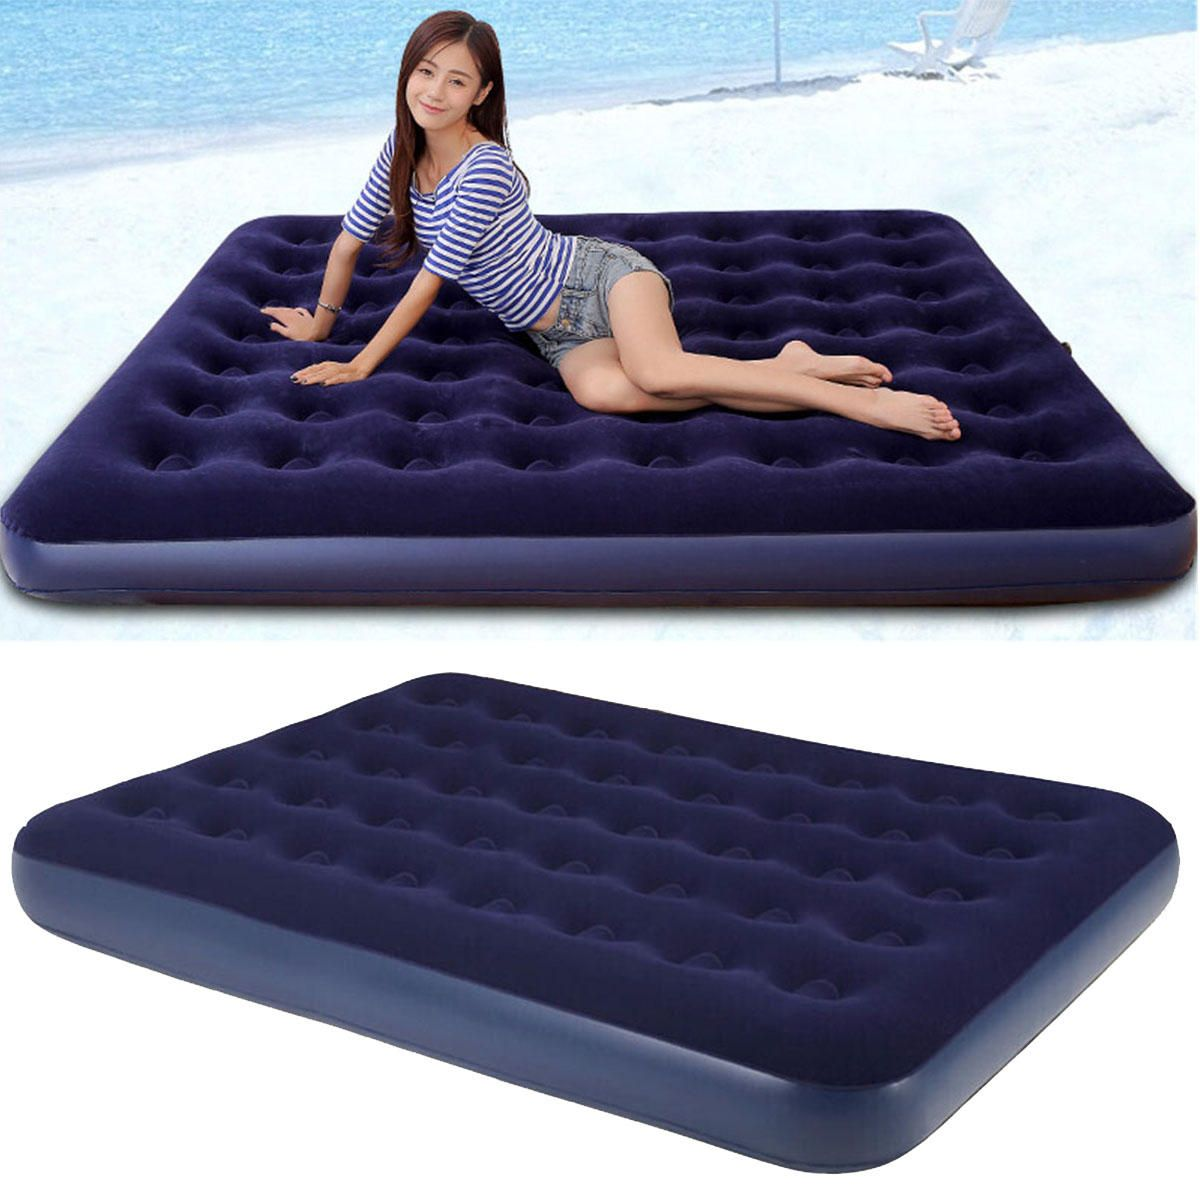 Us 59 99 139 Inflatable Travel